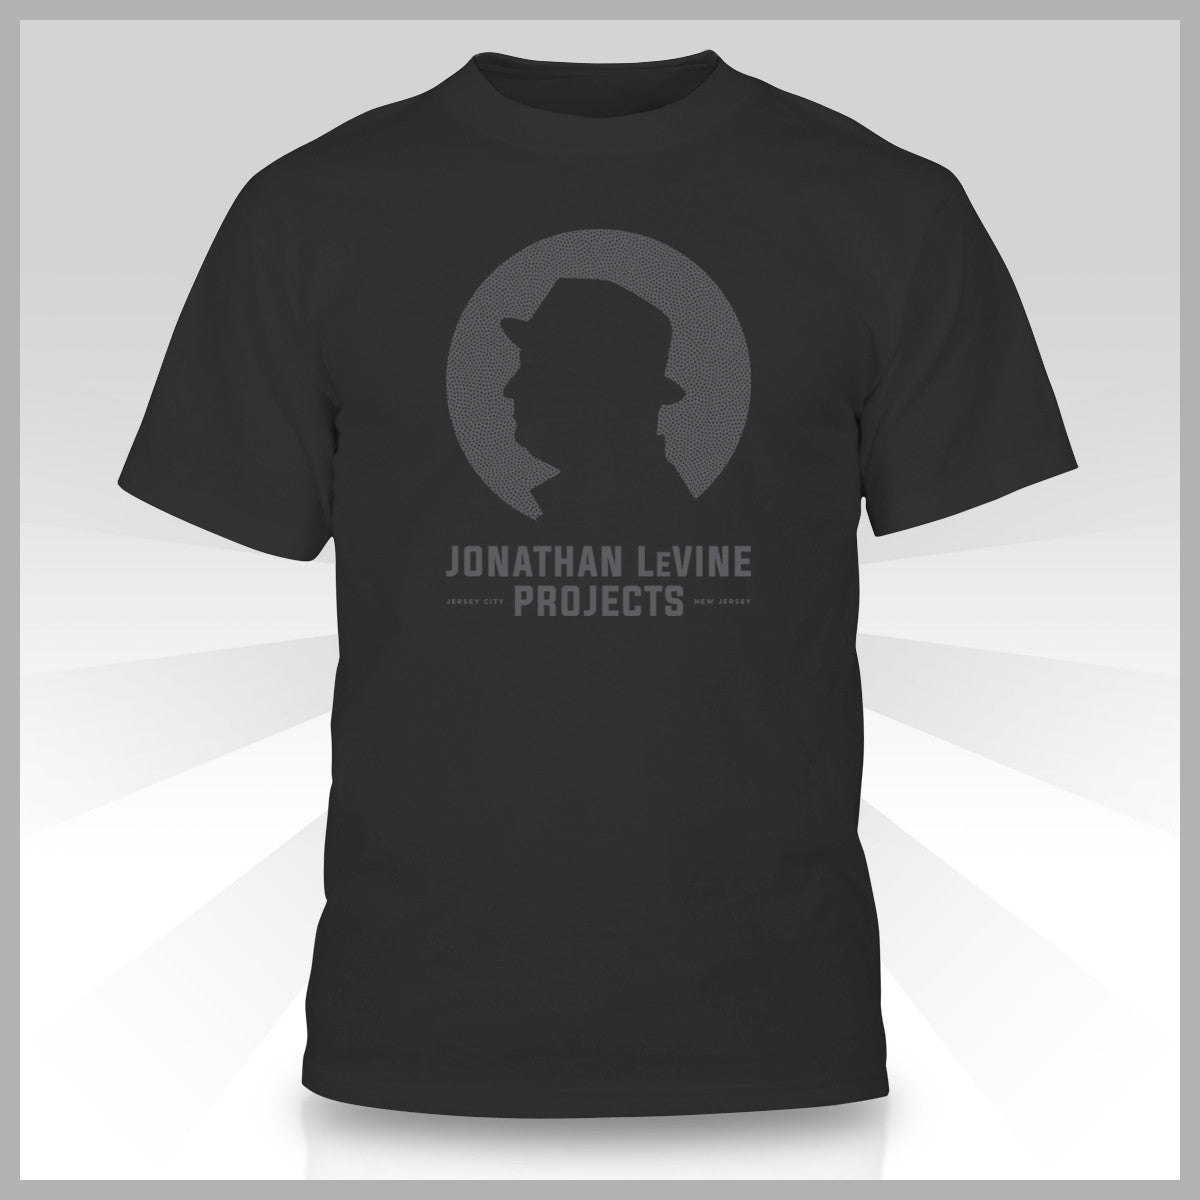 Jonathan LeVine Projects T-Shirt